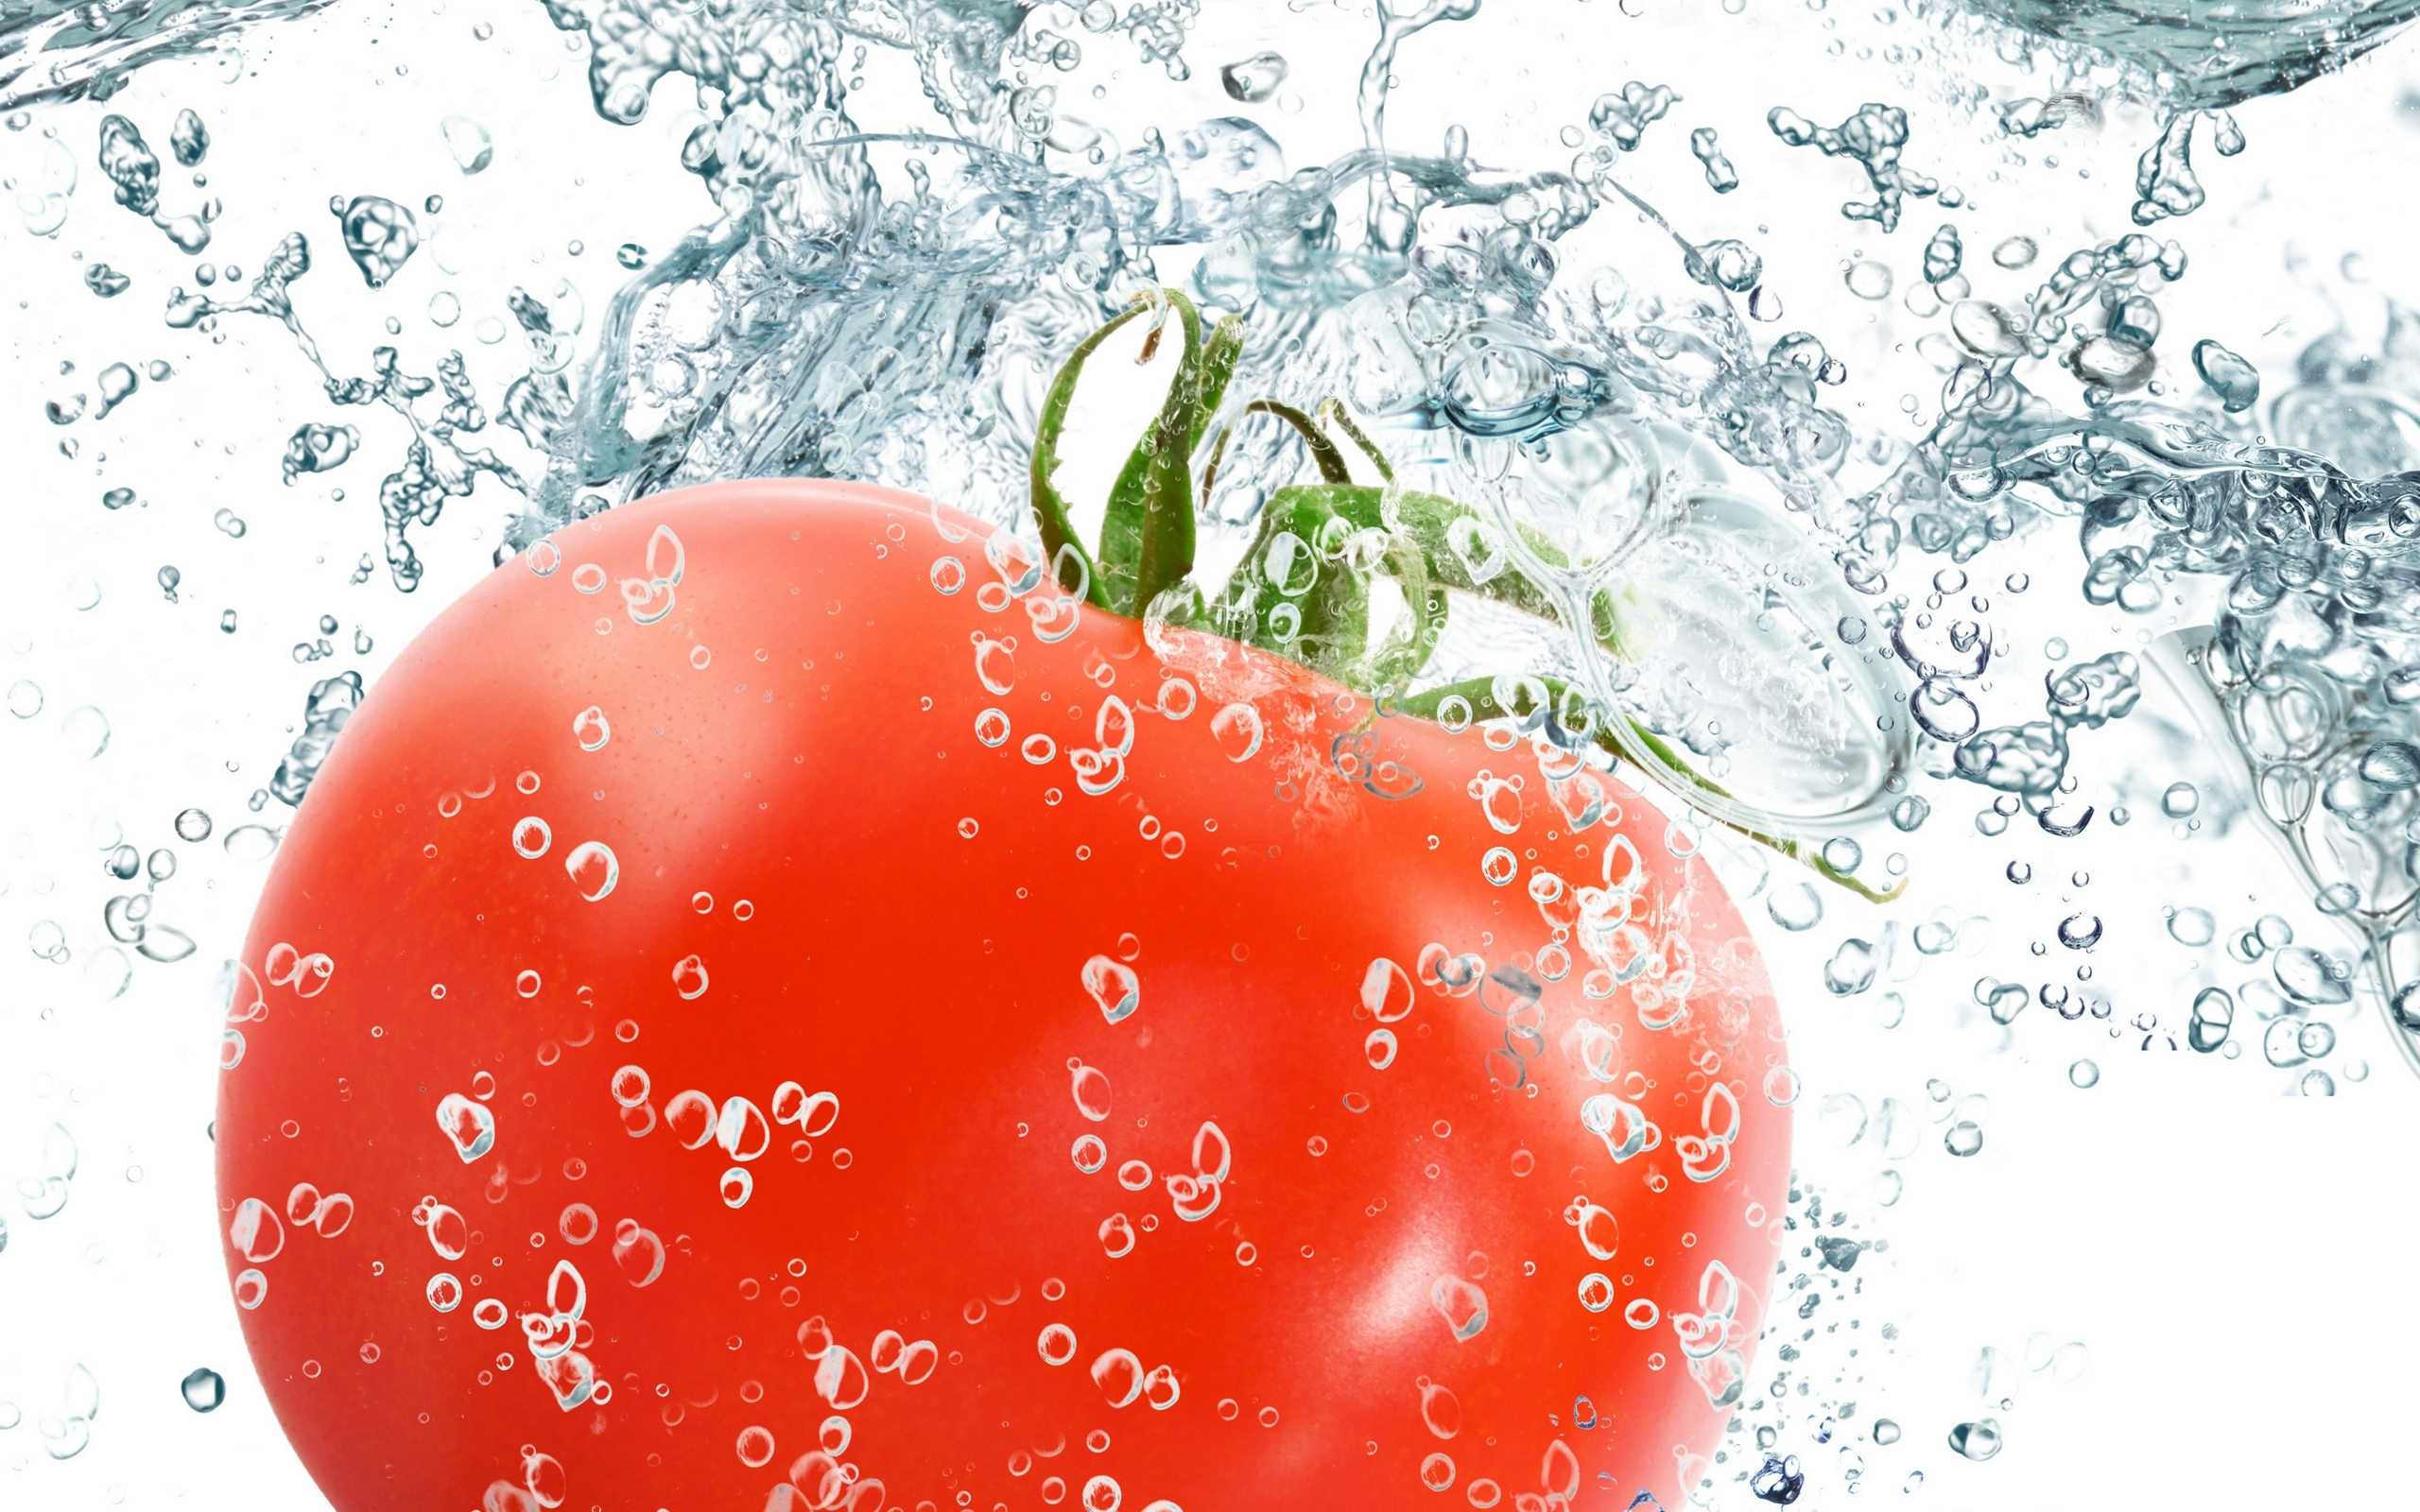 Tomato Wallpapers And Backgrounds